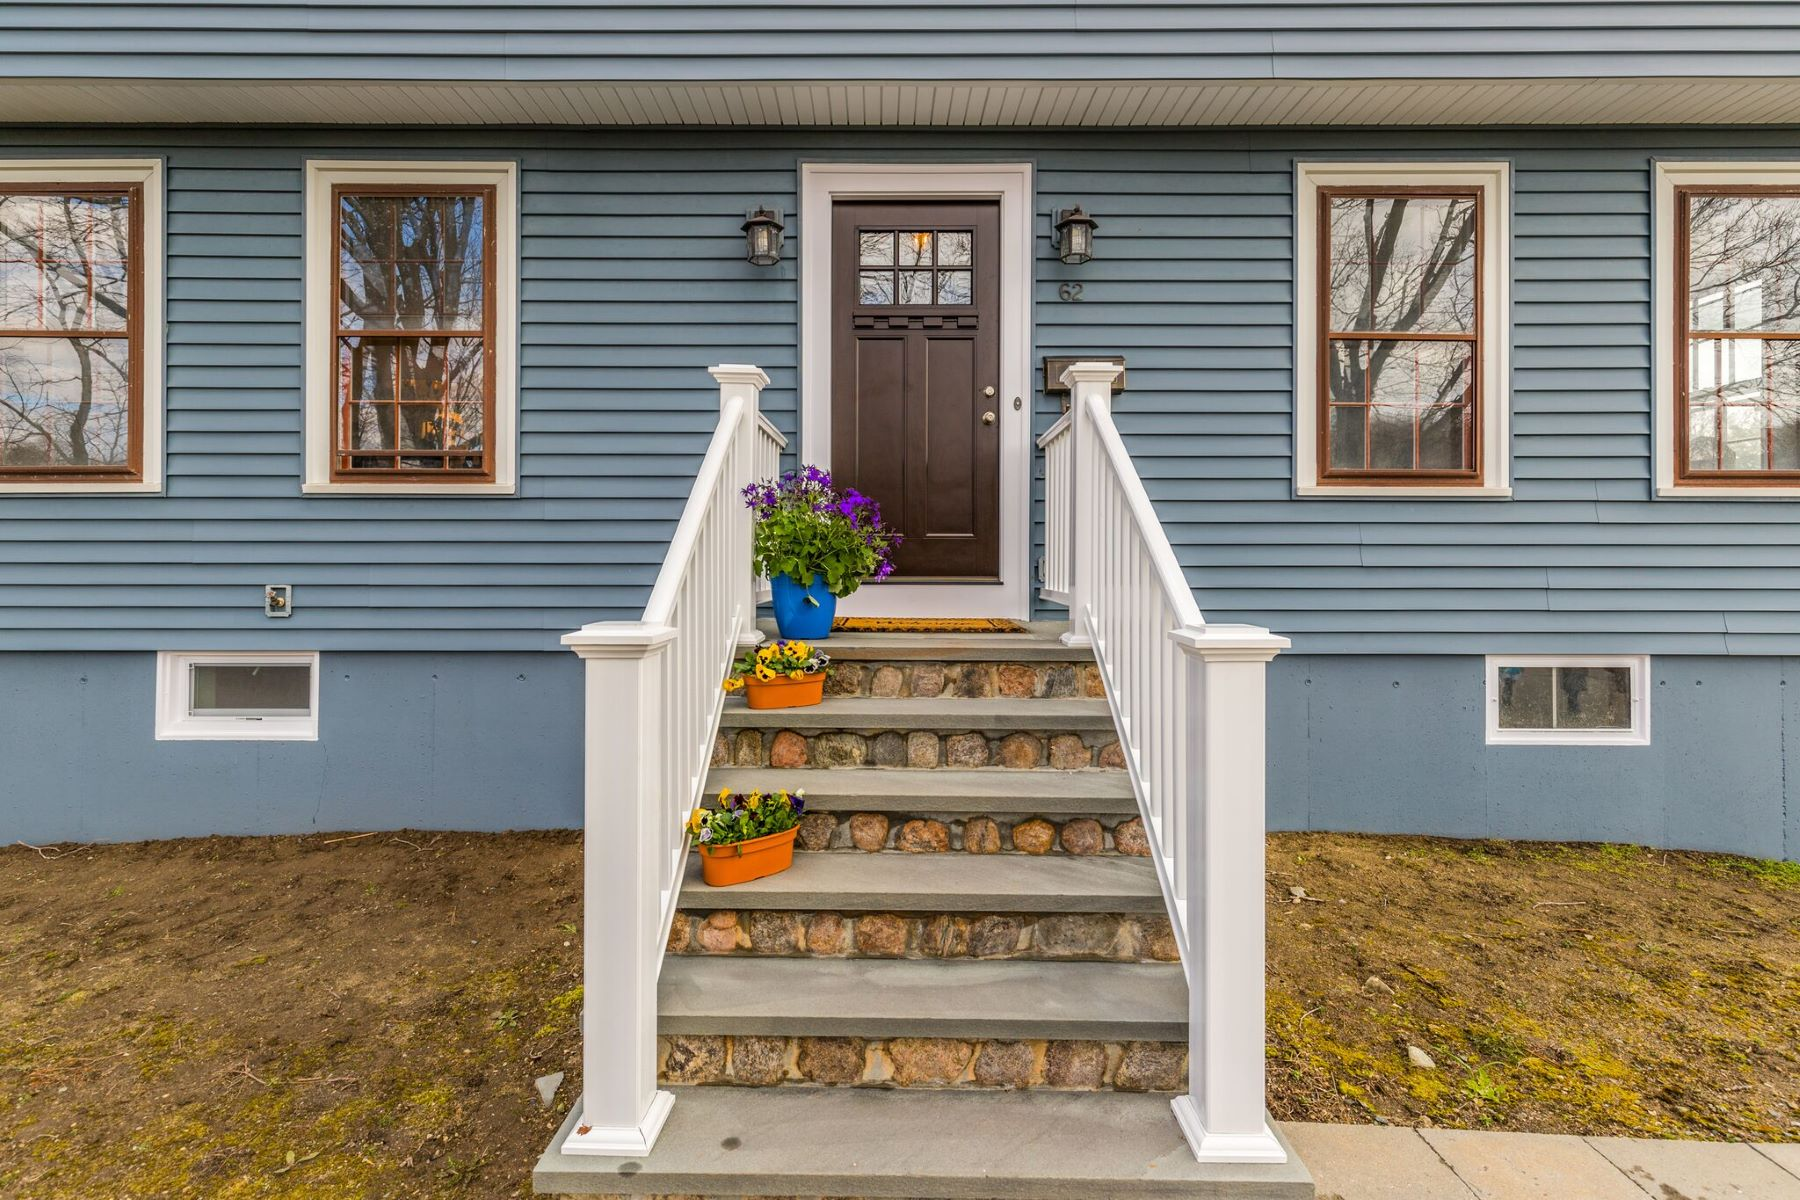 Single Family Home for Sale at Classic New England Colonial 62 Marion Road Ext Marblehead, Massachusetts 01945 United States